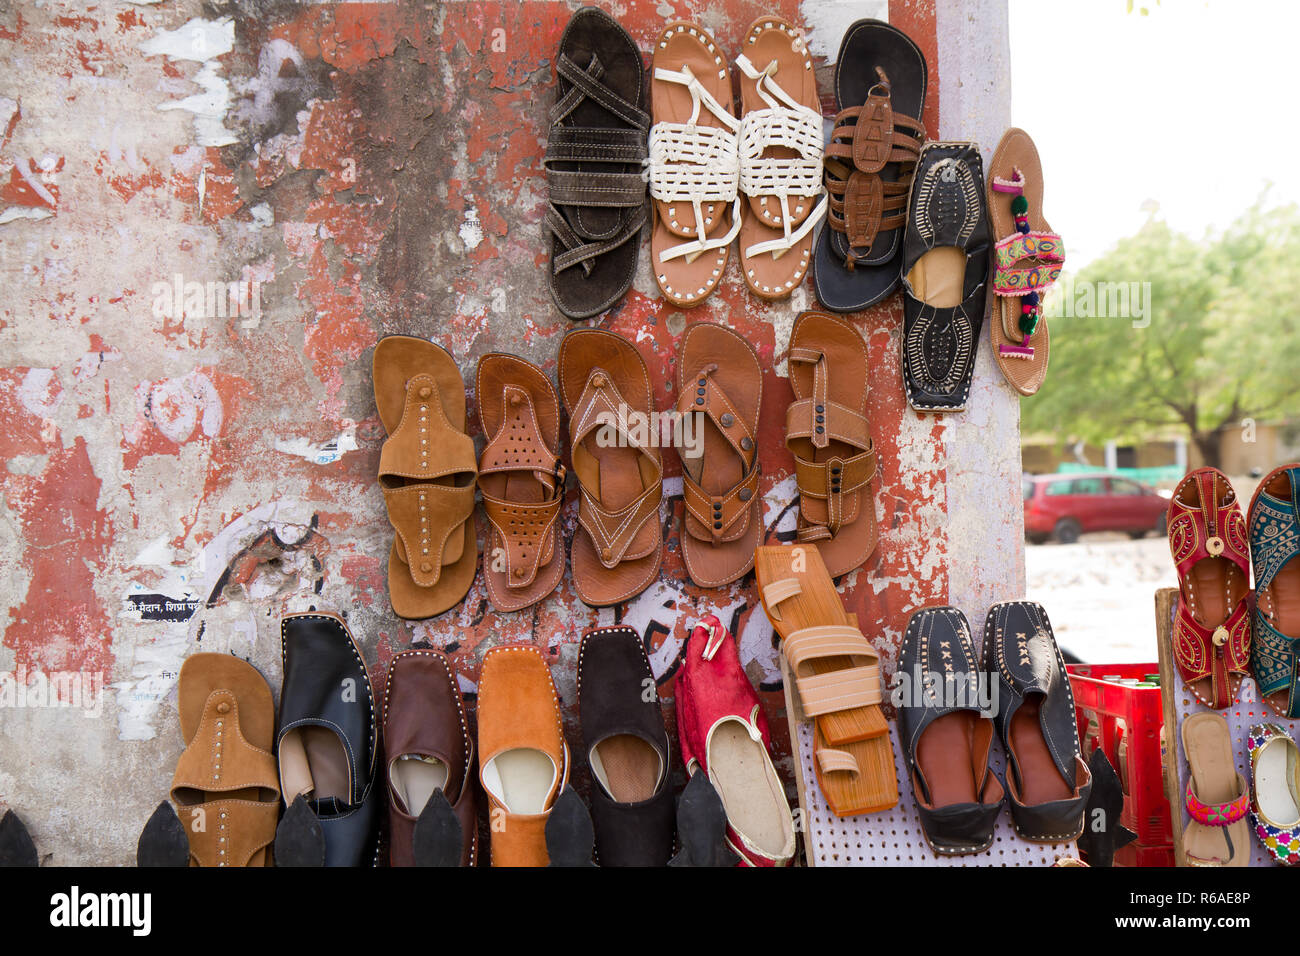 Indian Shoe Stall Imágenes De Stock   Indian Shoe Stall Fotos De ... 9a44968f2ee